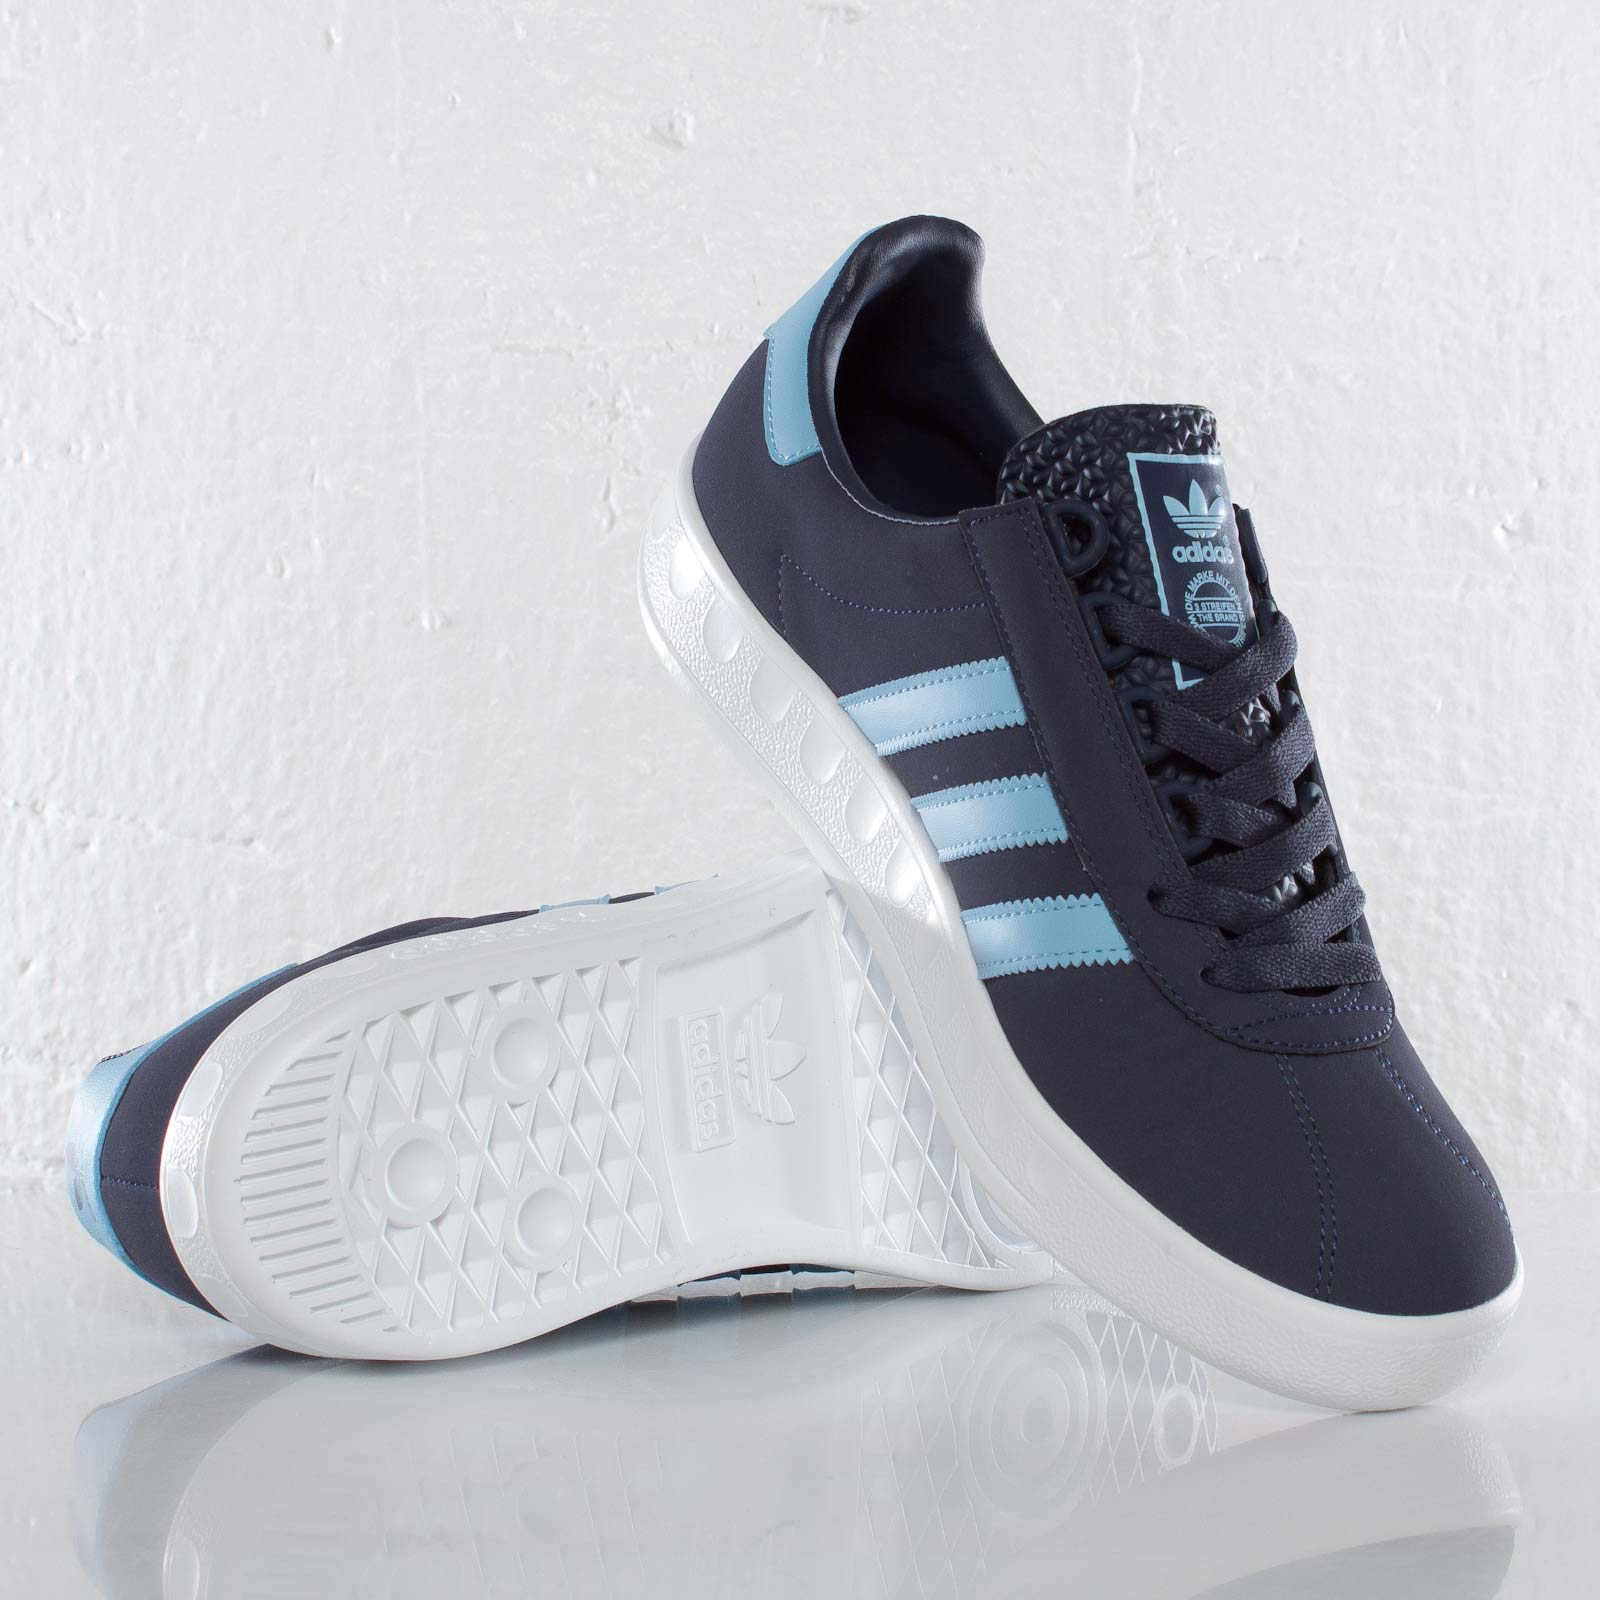 adidas Trimm Trab G95040 Sneakersnstuff I Sneakers